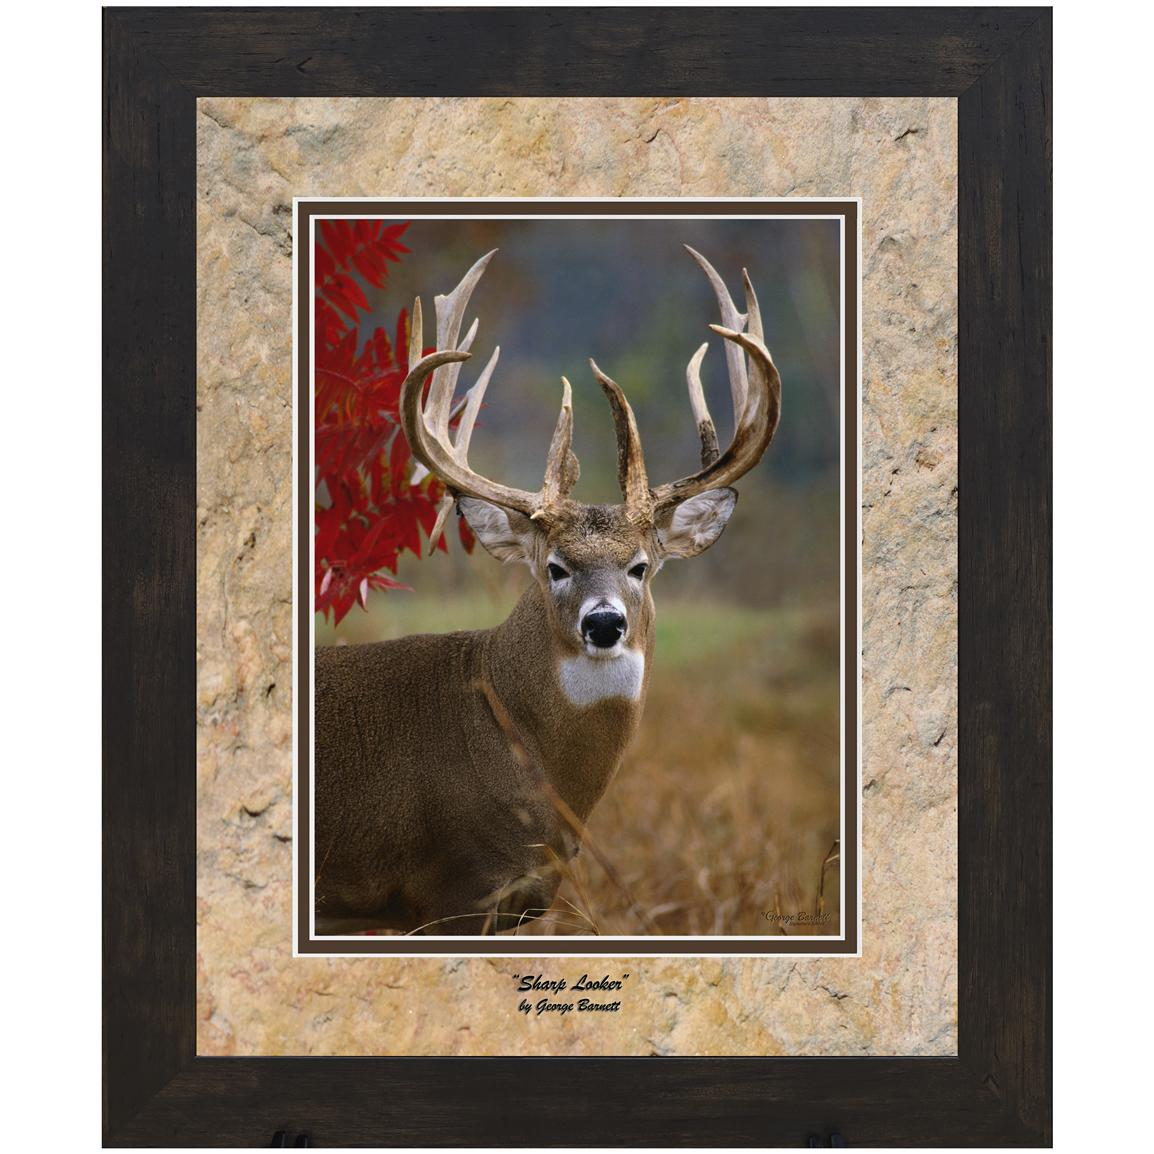 "George Barnett ""Sharp Looker"" Framed Photograph, 11x14"""